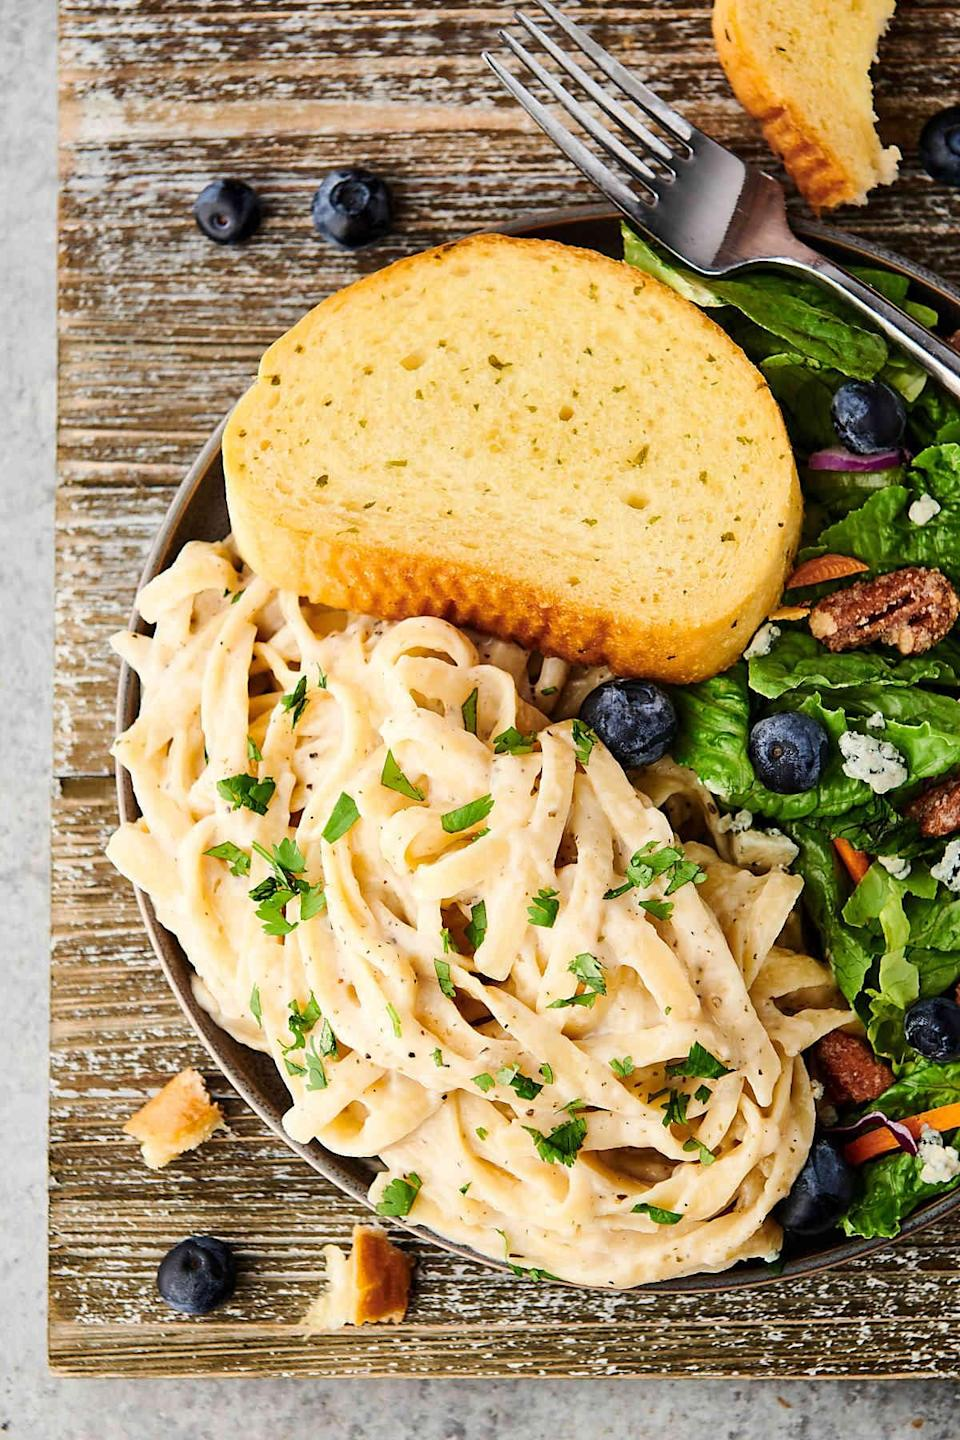 """<p>Who's hungry? This recipe will make your mouth water, so read with caution. Since the pasta cooks directly in the sauce, these noodles are rich and perfectly flavored. Mixed with skim milk, butter, garlic, Parmesan, and Italian seasonings, you'll be enjoying this meal in no time. To make the right amount of food for two people, you can easily adjust the recipe where it says """"yield.""""</p> <p><strong>Get the recipe:</strong> <a href=""""https://showmetheyummy.com/one-pot-fettuccine-alfredo-pasta/"""" class=""""link rapid-noclick-resp"""" rel=""""nofollow noopener"""" target=""""_blank"""" data-ylk=""""slk:one-pot fettuccine alfredo pasta"""">one-pot fettuccine alfredo pasta</a></p>"""